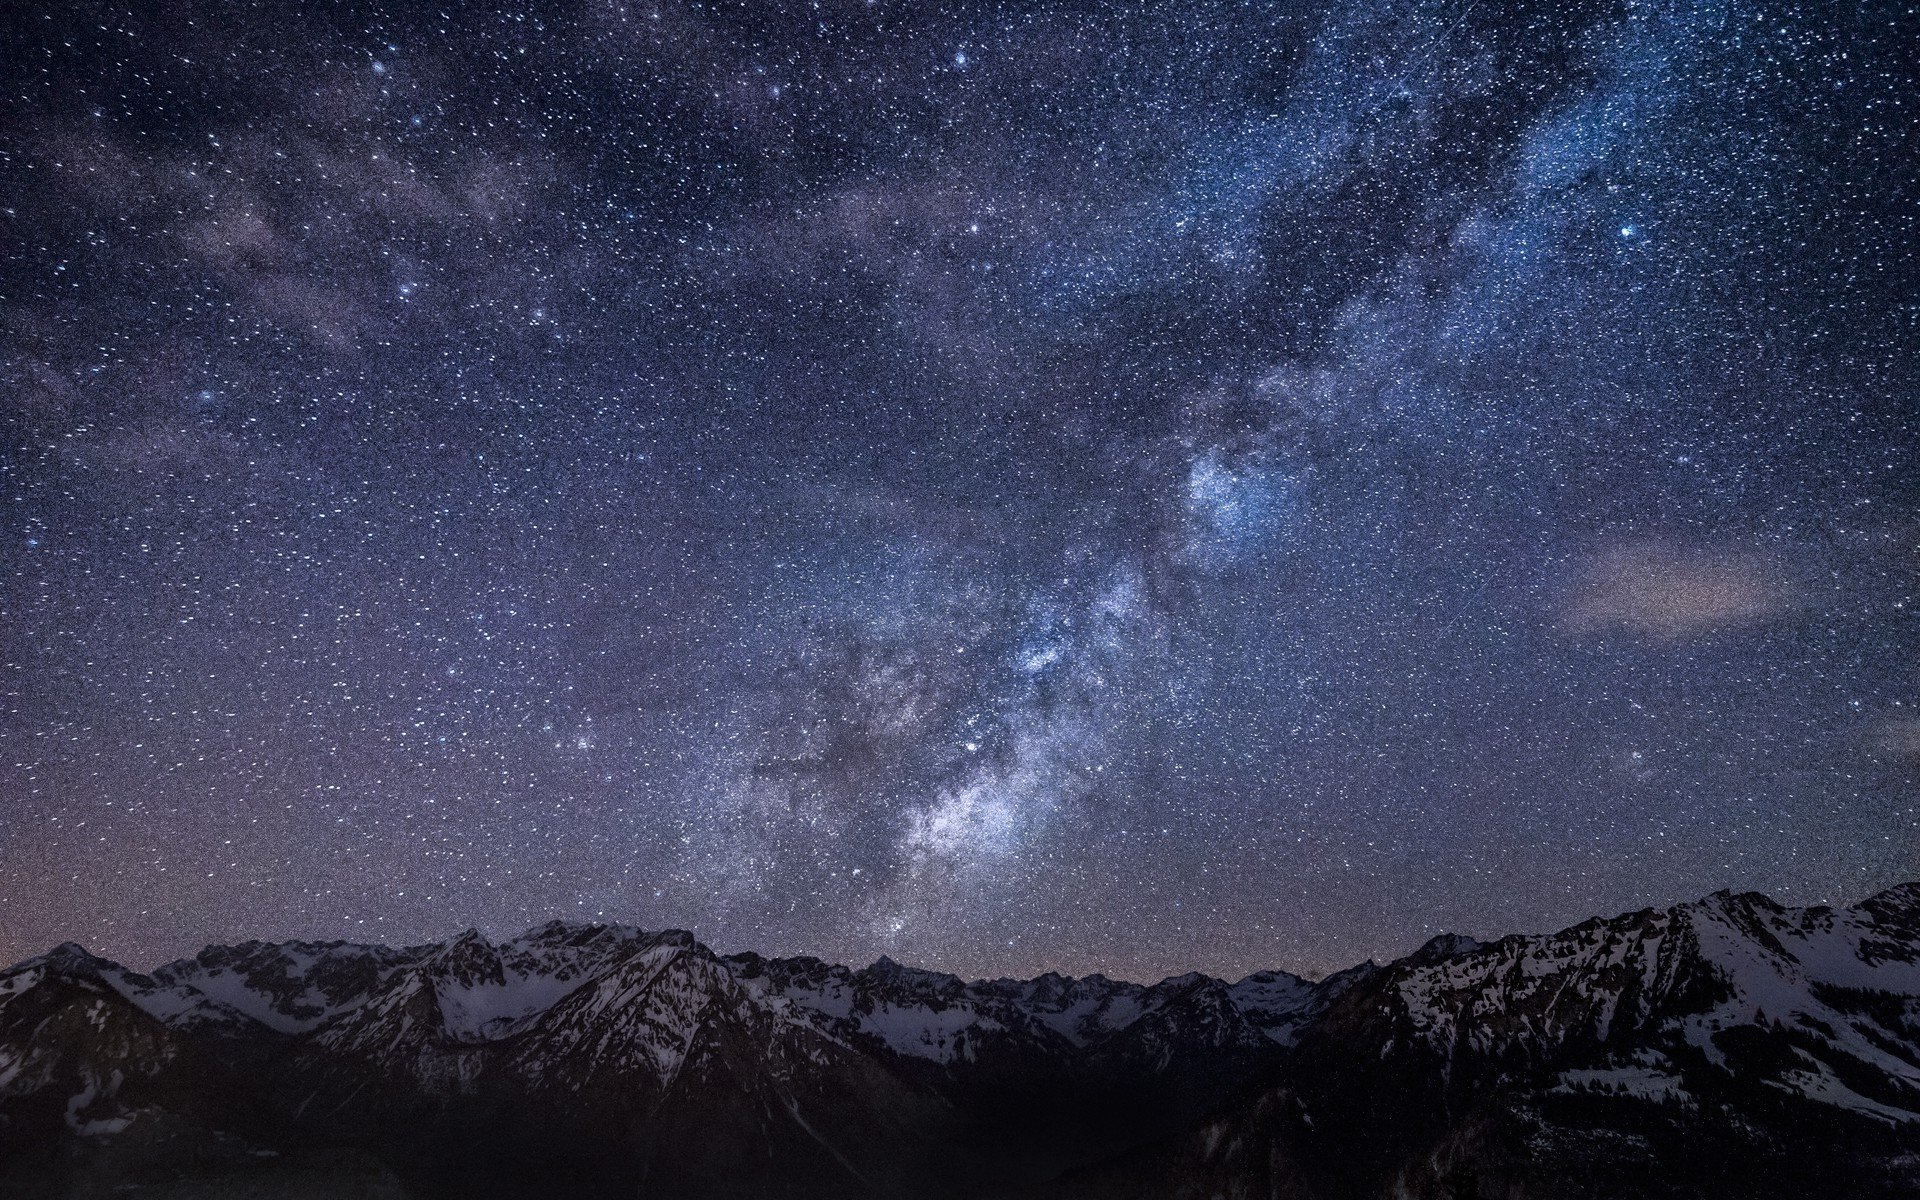 Starry sky over the mountain peak Wallpaper 1920x1200